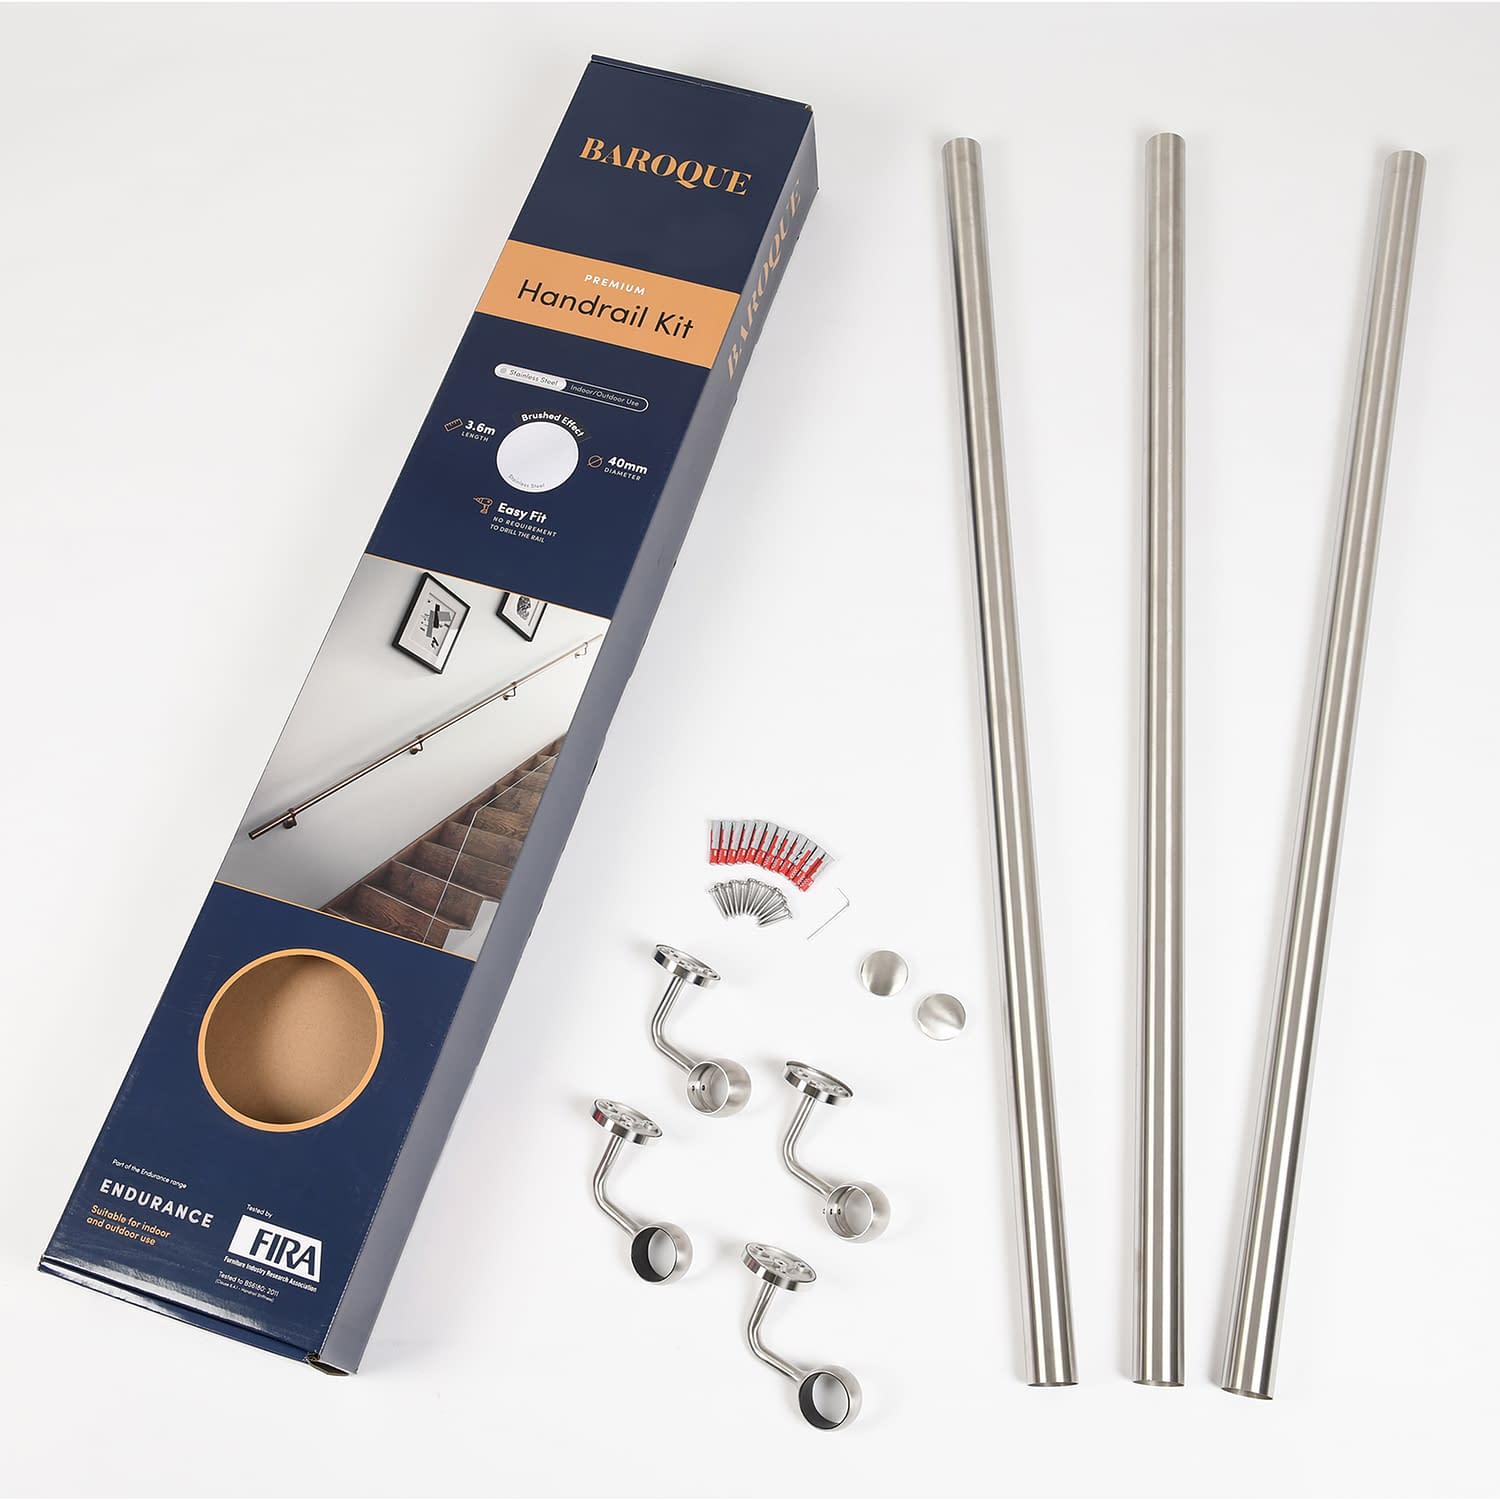 Brushed Stainless Steel Handrail Kit